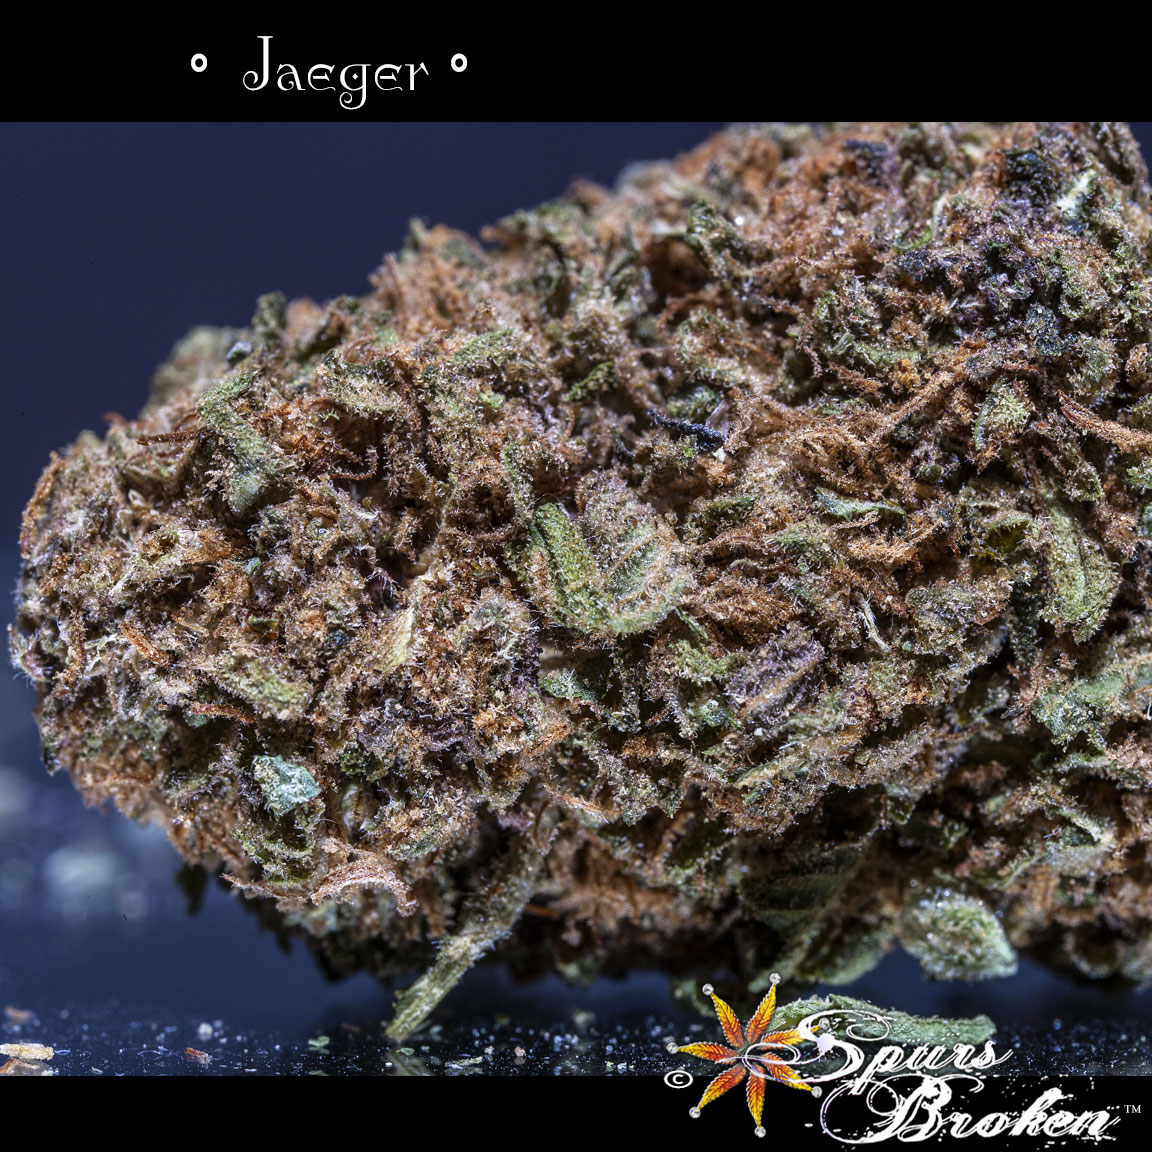 Jaeger - Cannabis Macro Photography by Spurs Broken (Robert R. Sanders)